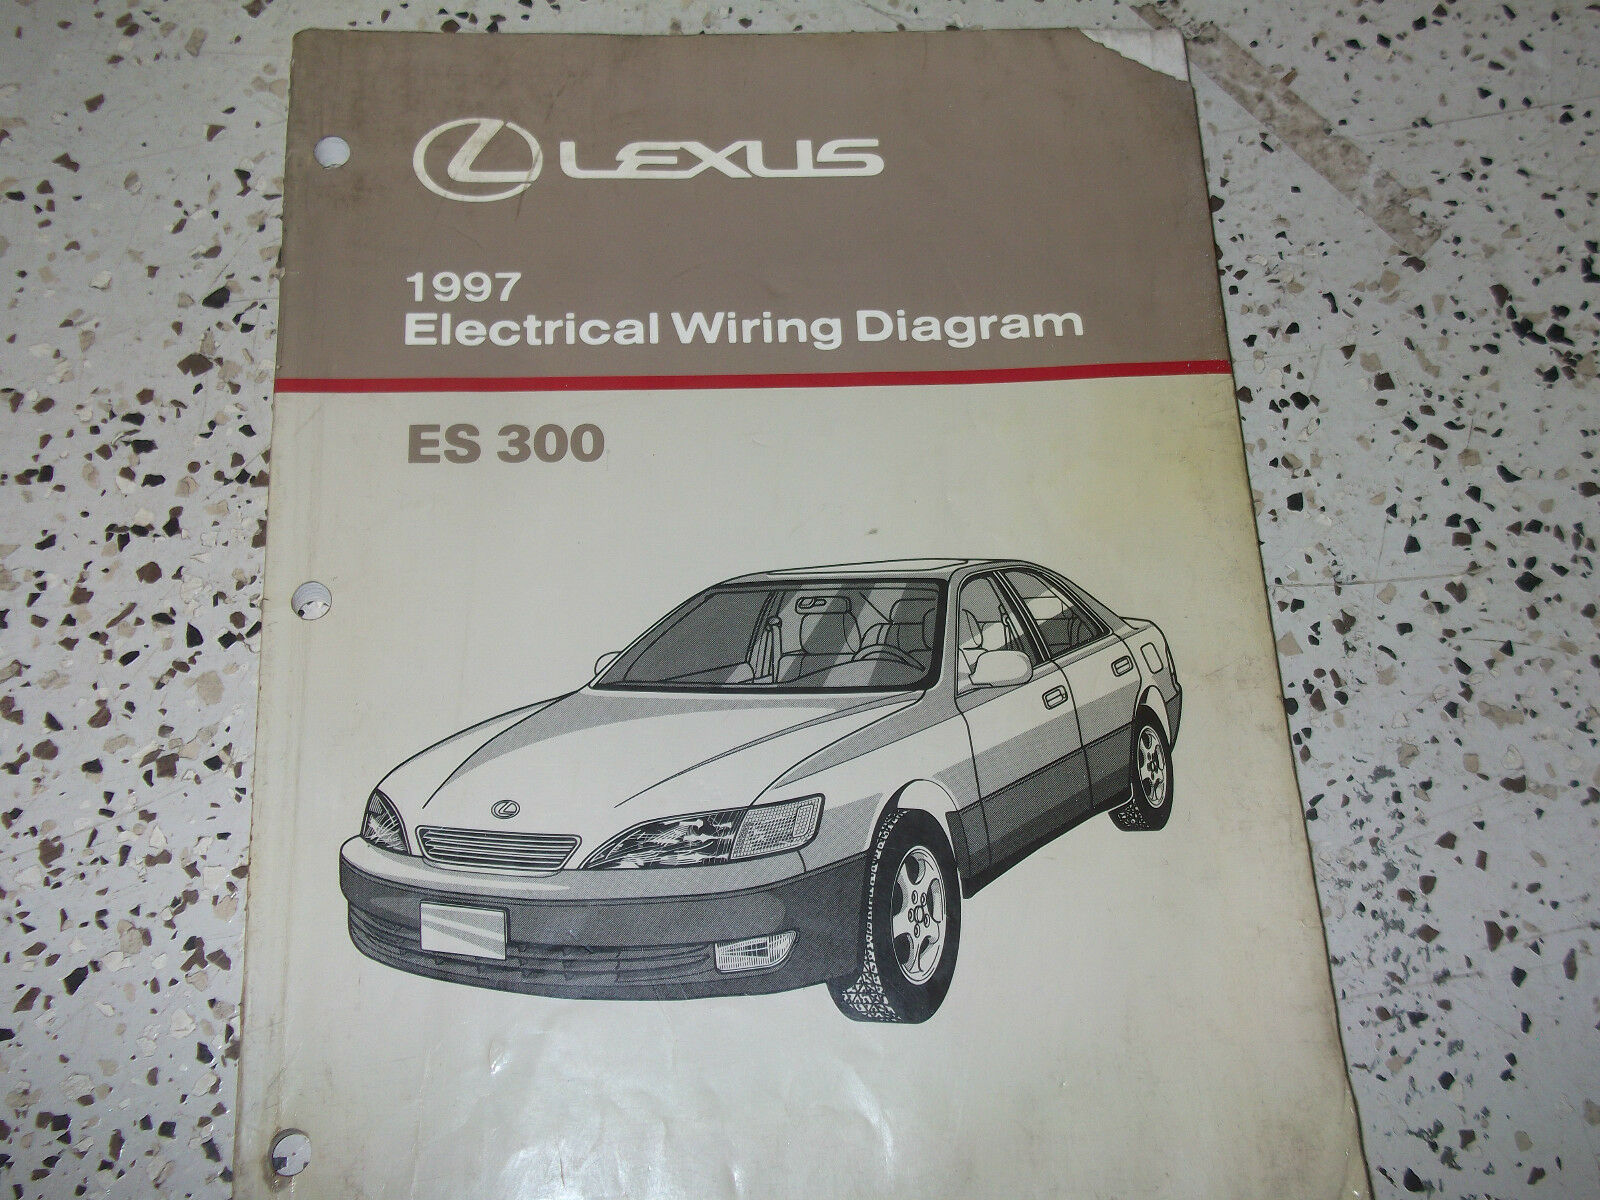 1997 Lexus Es300 Es 300 Electrical Wiring Diagram Service Shop Gs300 Repair Manual Ewd 1 Of 3only 2 Available